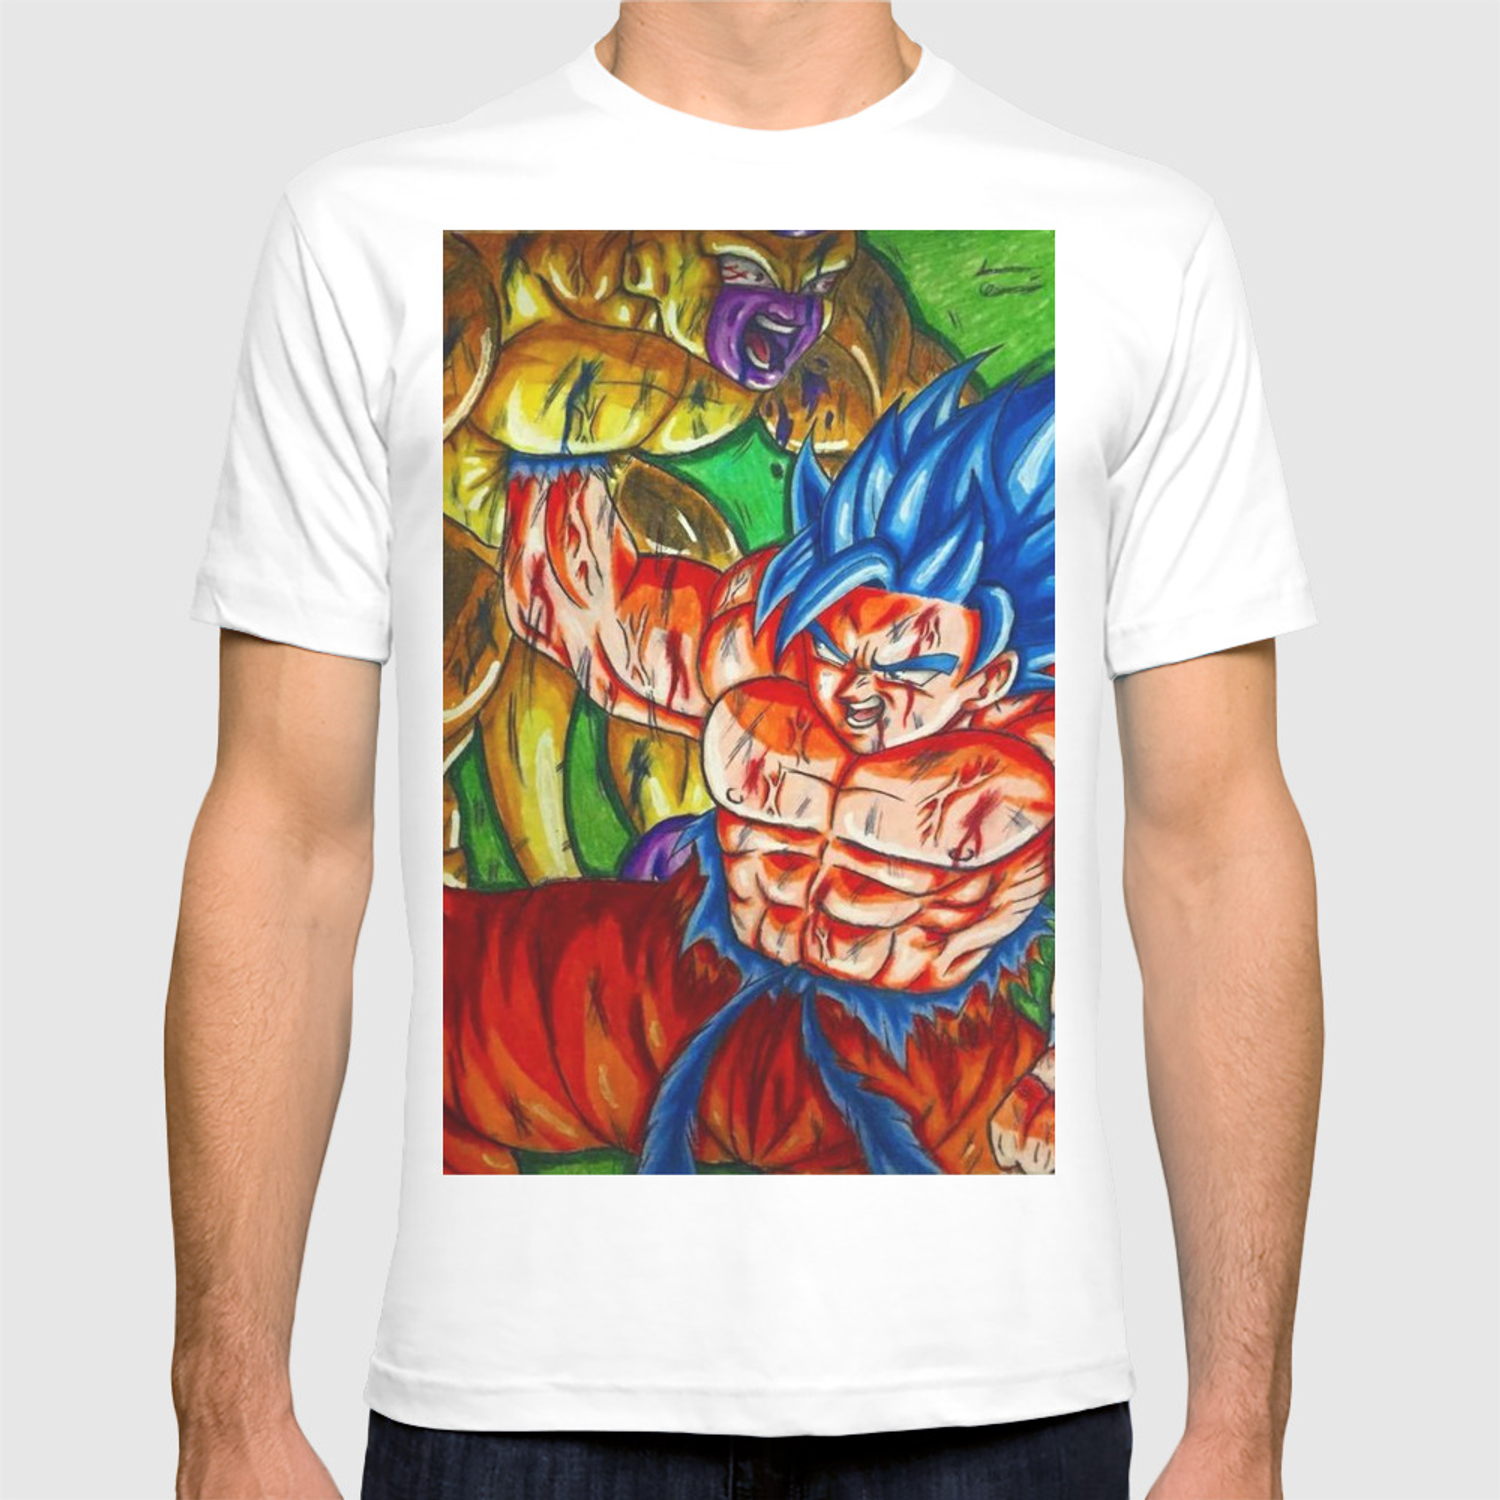 06562111 Ssb kaioken goku vs Golden frieza T-shirt by saquanarts | Society6